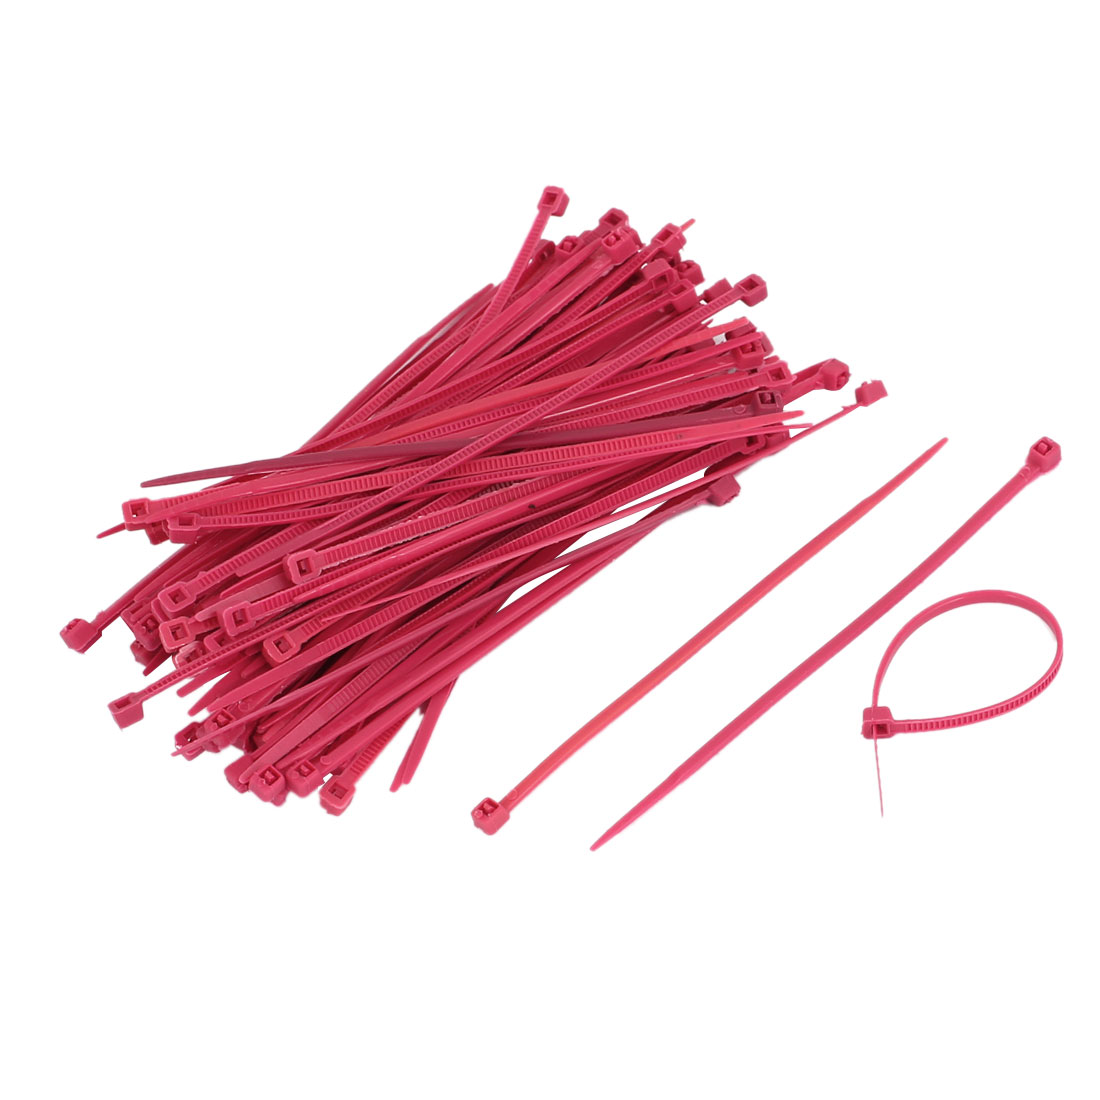 100 Pcs Adjustable Self Locking Nylon Cable Zip Ties Amaranth 2.5mm x 100mm